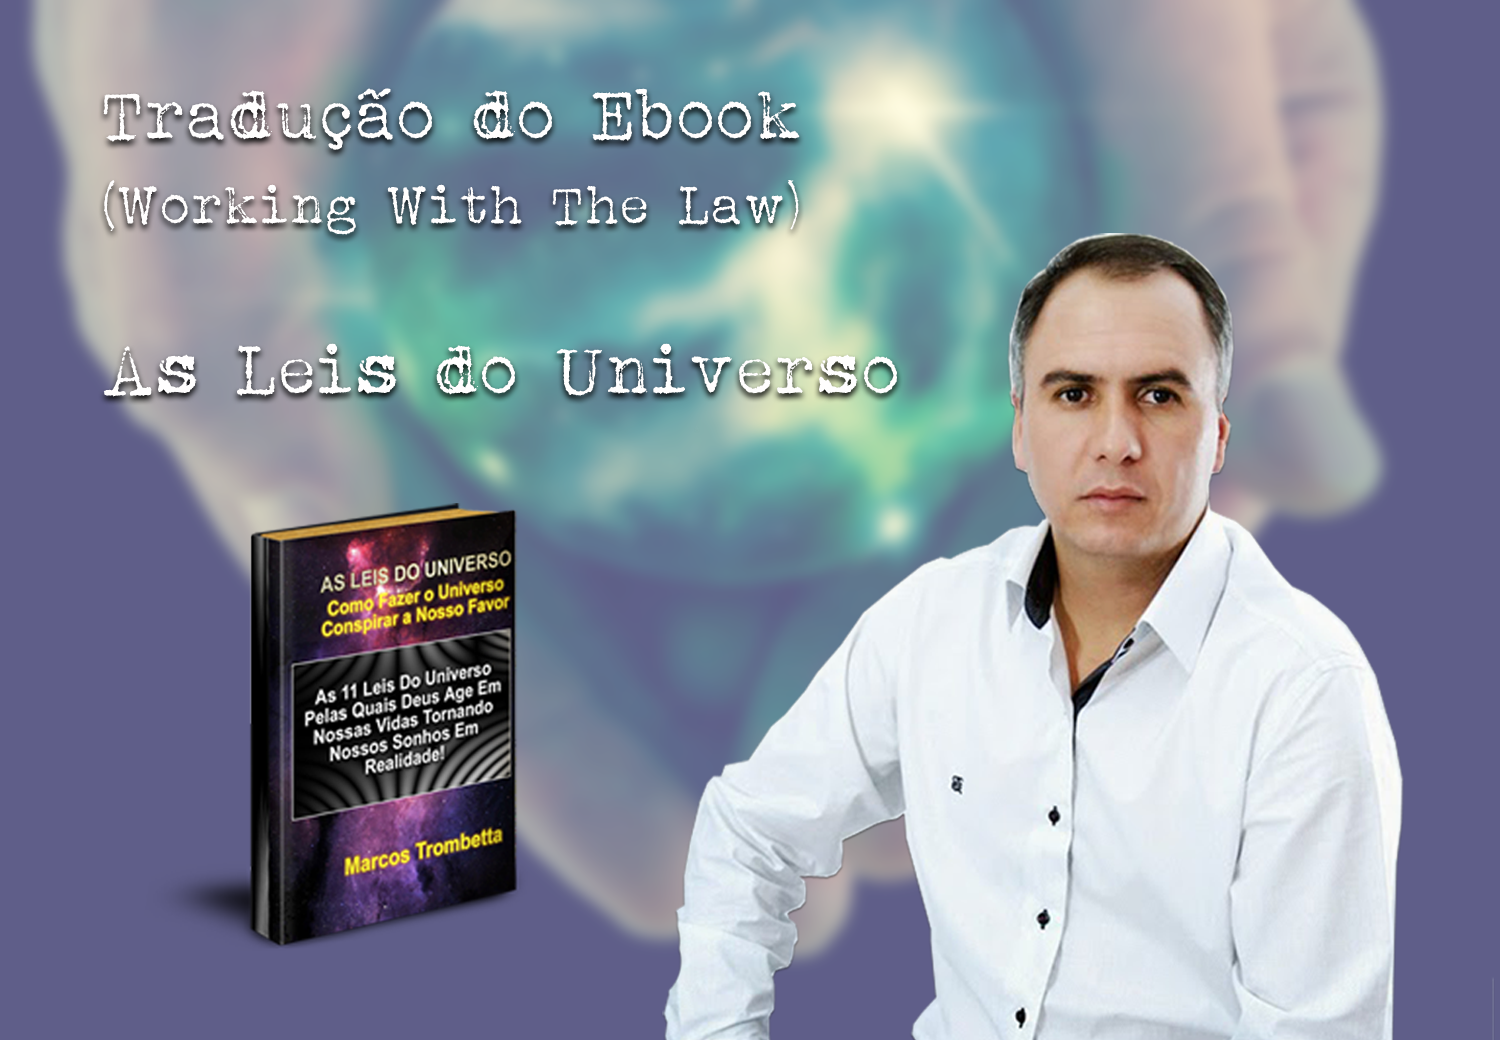 Ebook As Leis do Universo, Marcos Trombetta